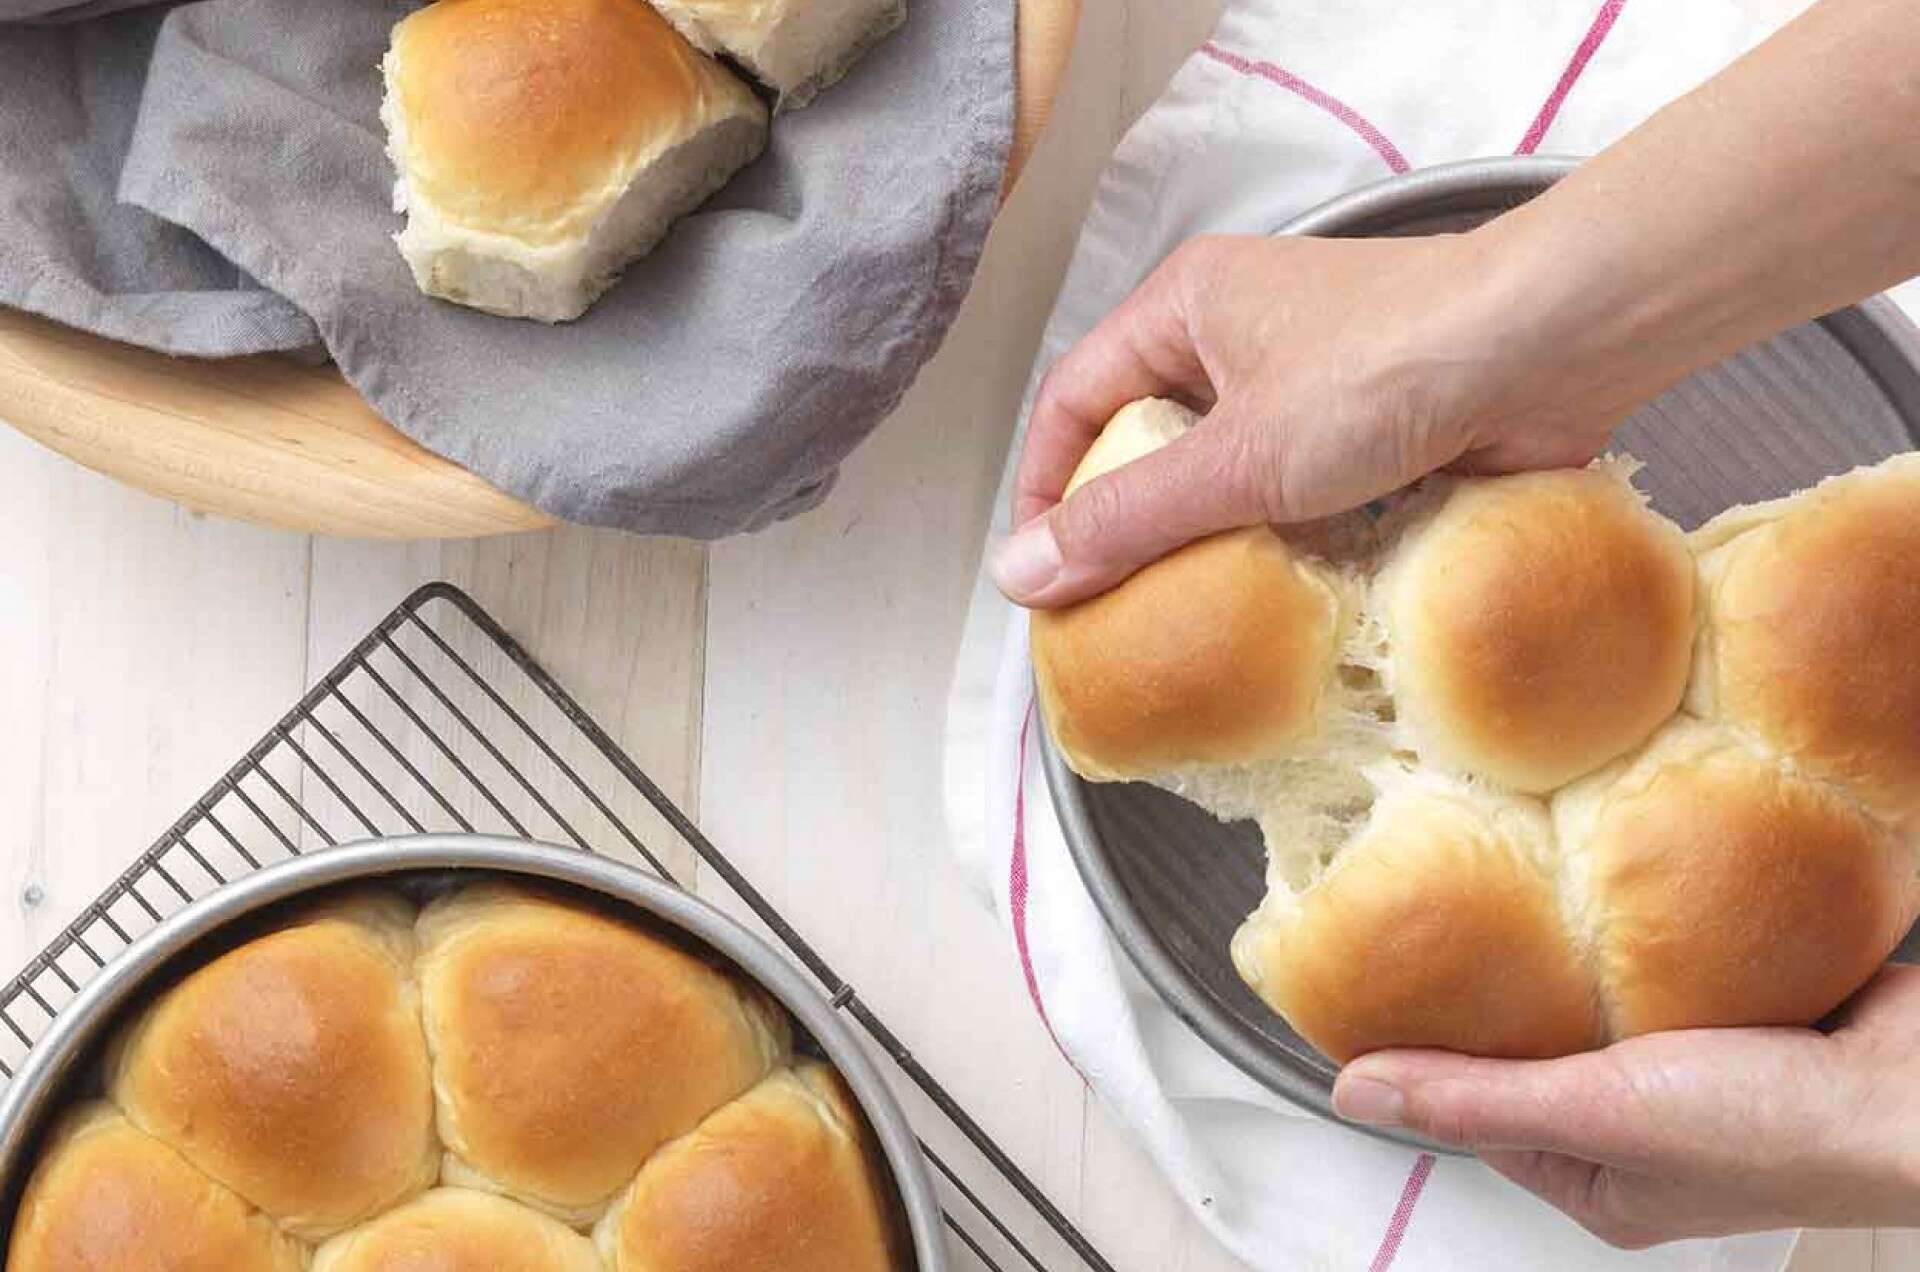 Hands pulling apart Golden Pull-Apart Buns from the pan